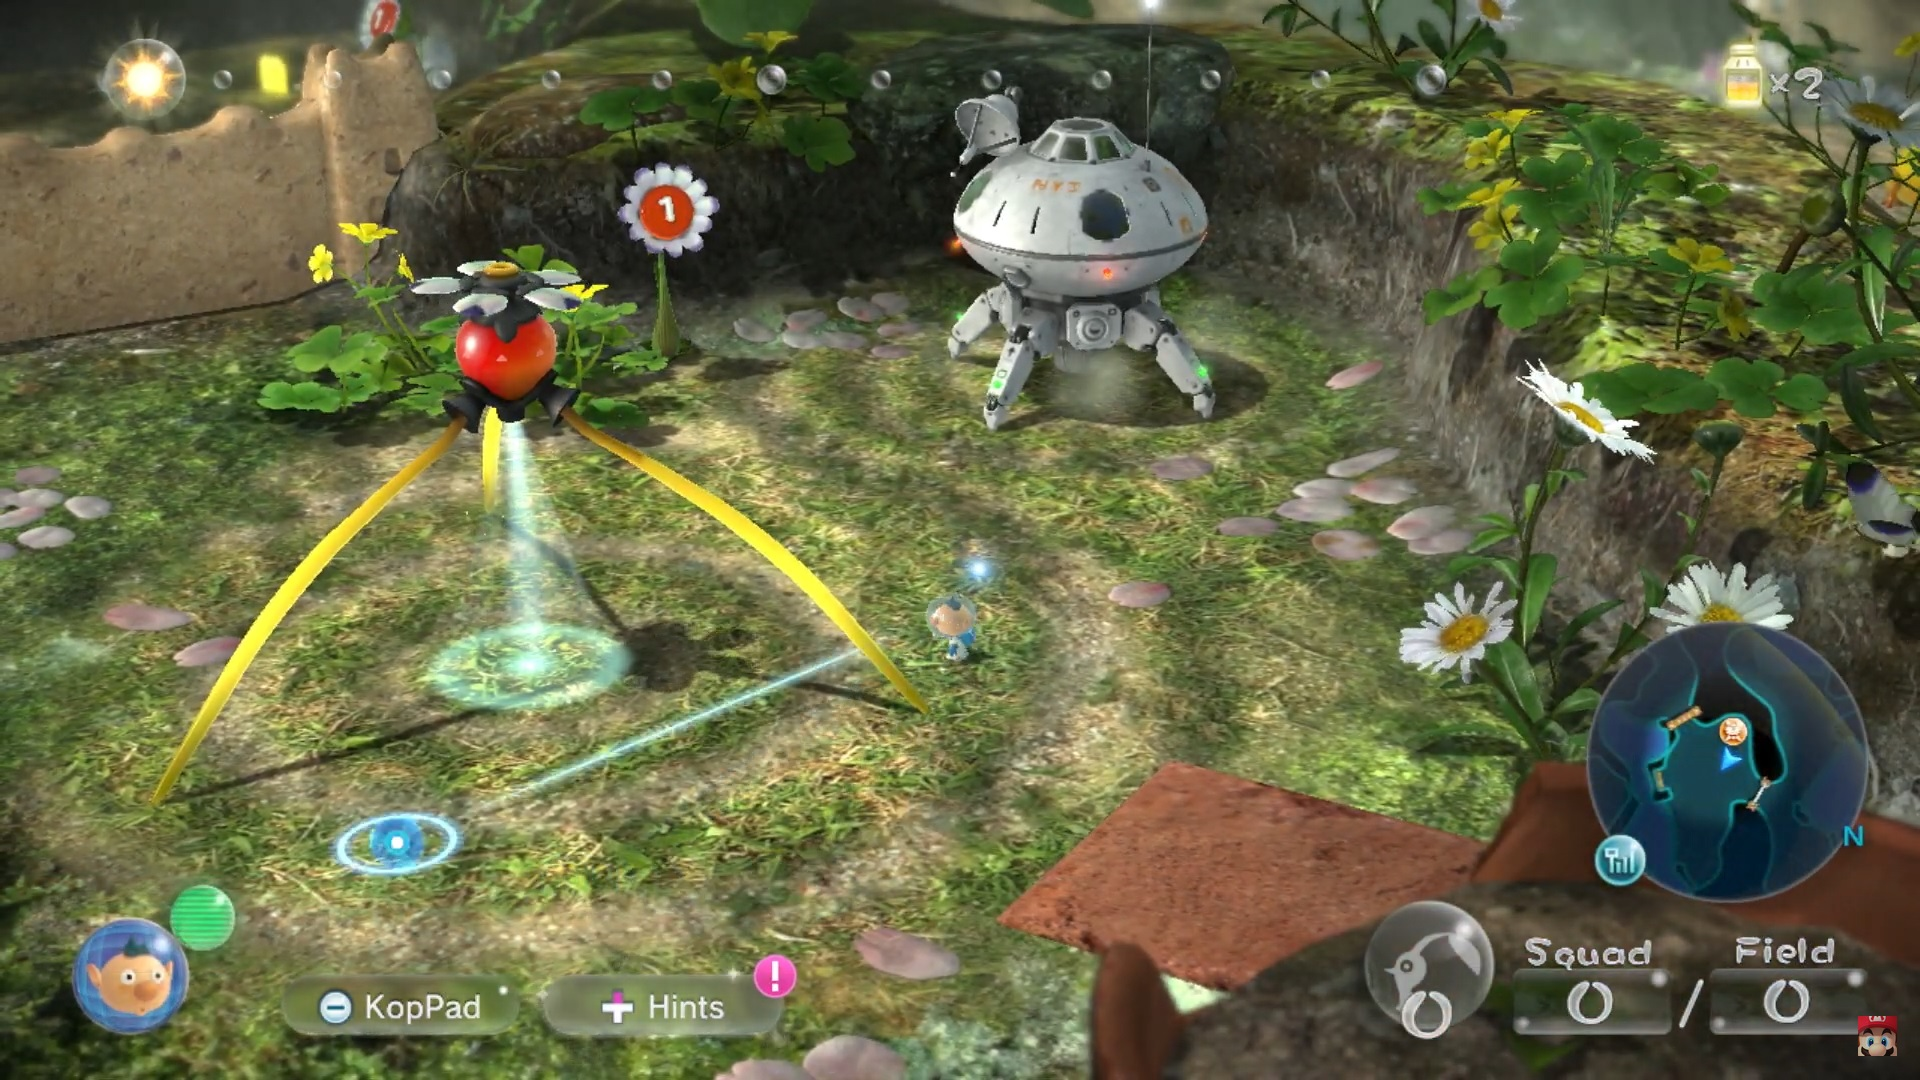 Pikmin 3 Deluxe confirms demo for Nintendo Switch